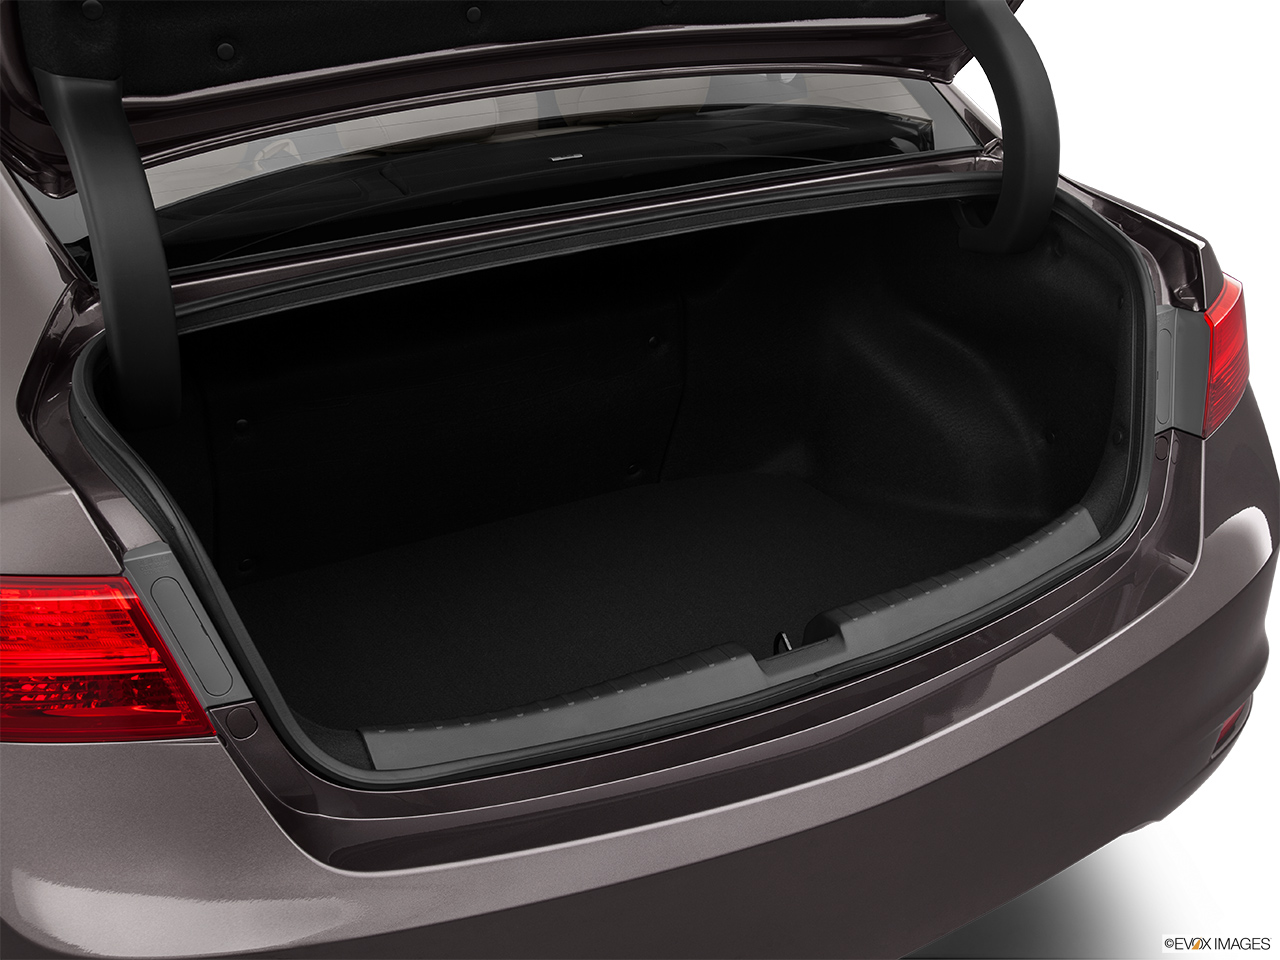 2014 Acura ILX Hybrid Base Trunk open.